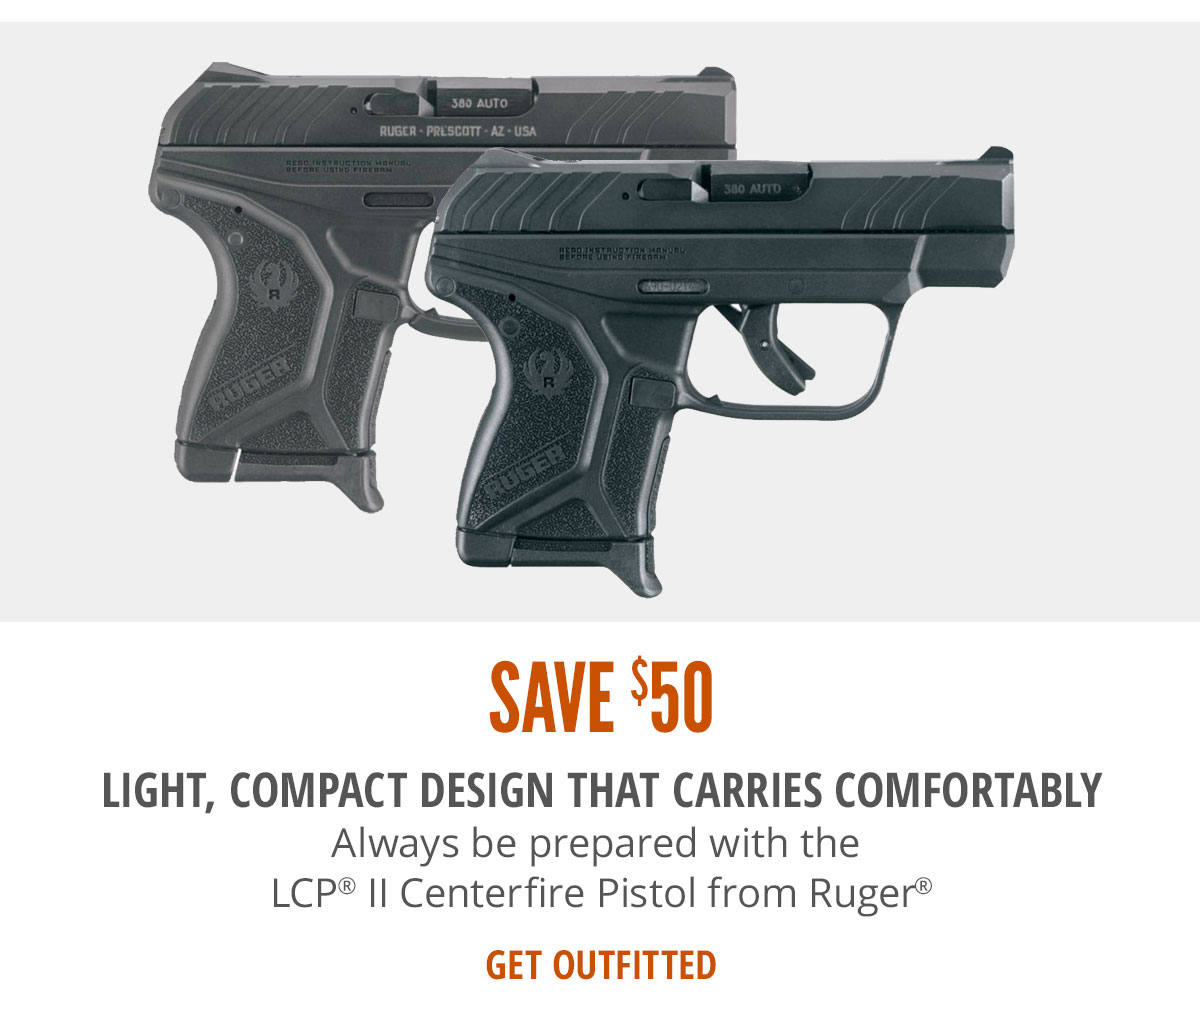 Ruger LCP II Centerfire Pistols